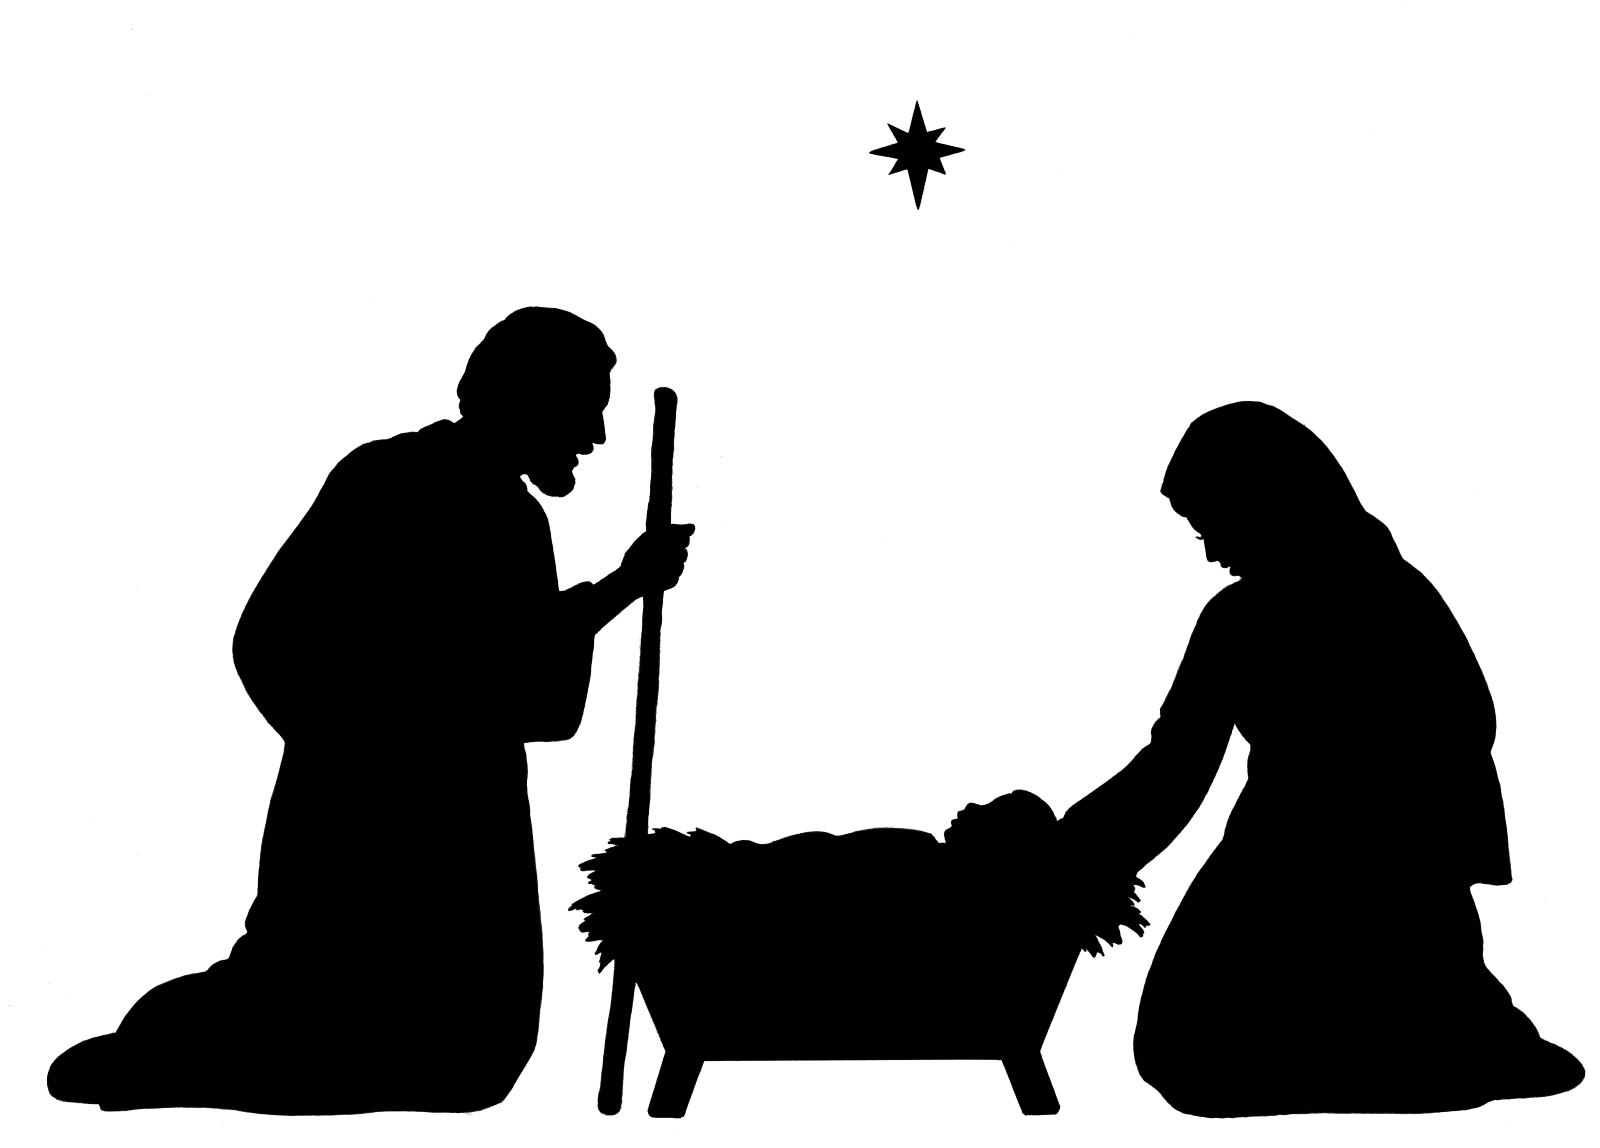 Star Silhouette Of Holy Family Christmas Decoration